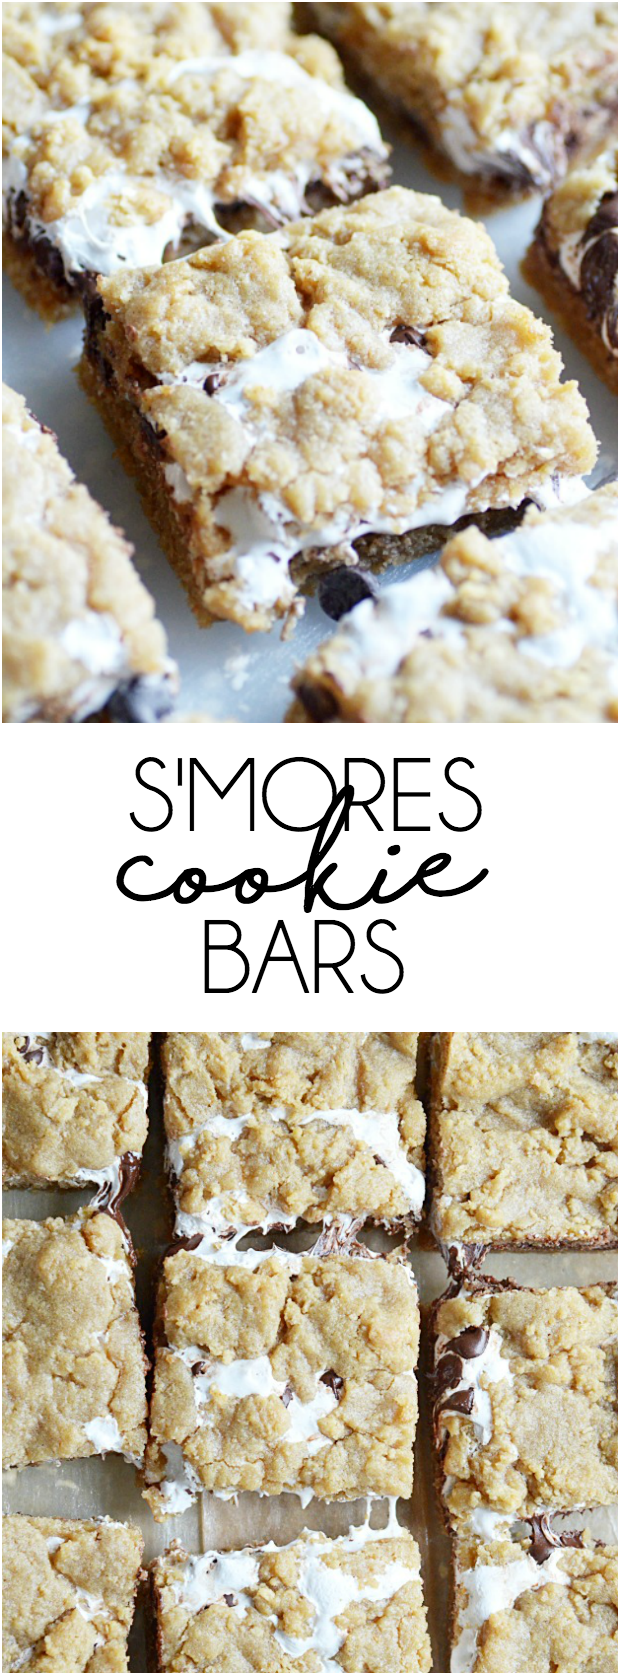 S'mores Cookie Bars #dessertbars